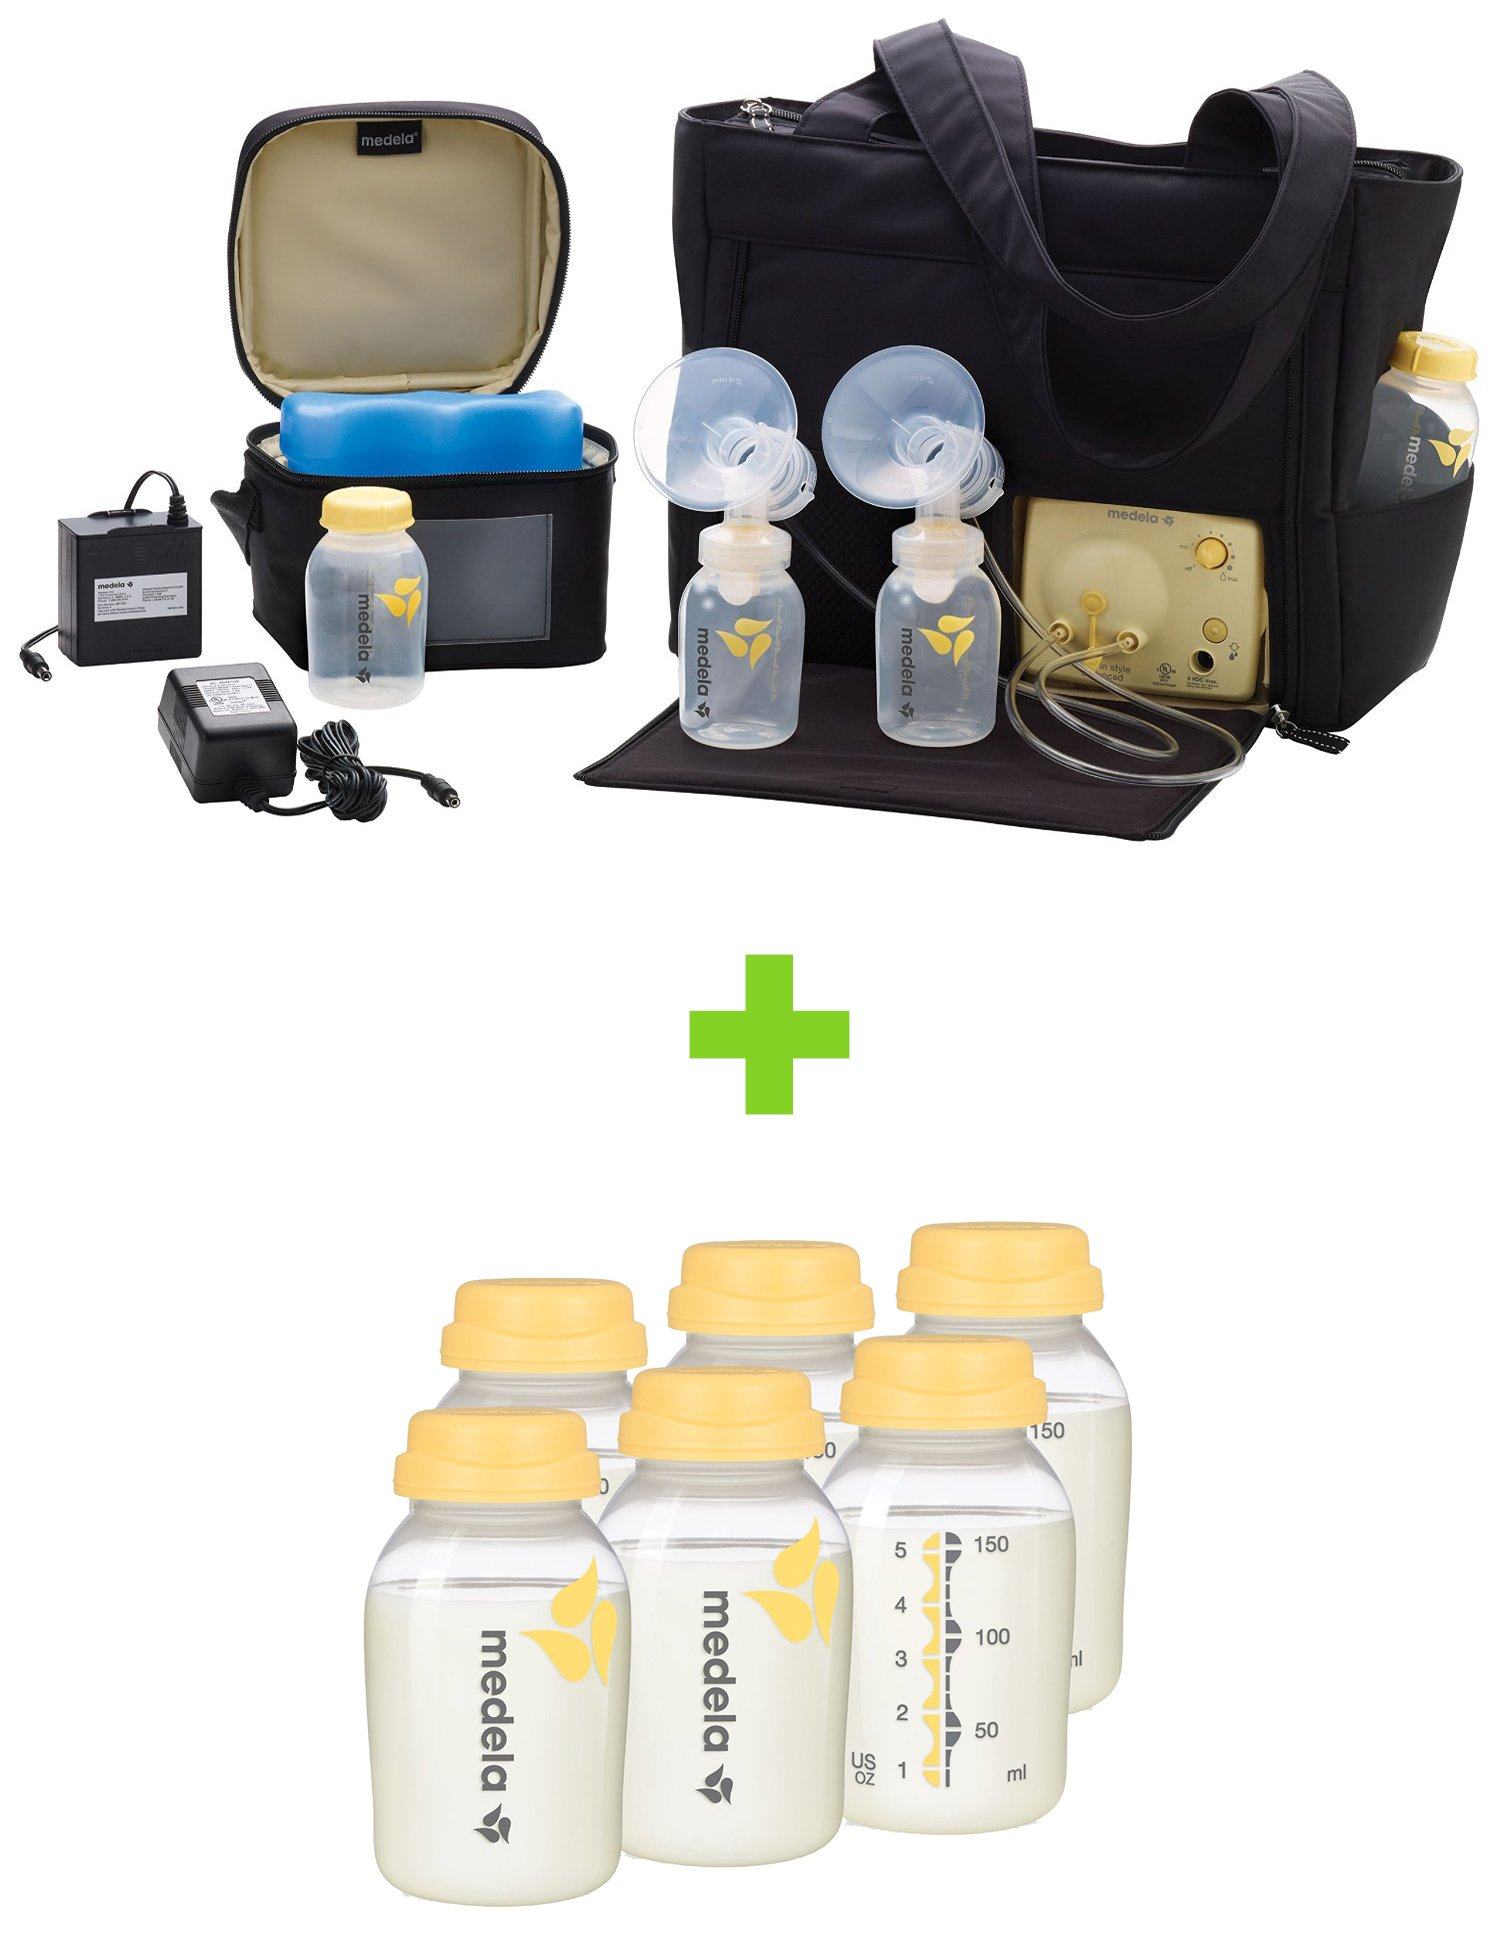 Medela Pump in Style Advanced Breast Pump with On the Go Tote with TEN Breast Milk Collection and Storage Bottles, 5 Ounce